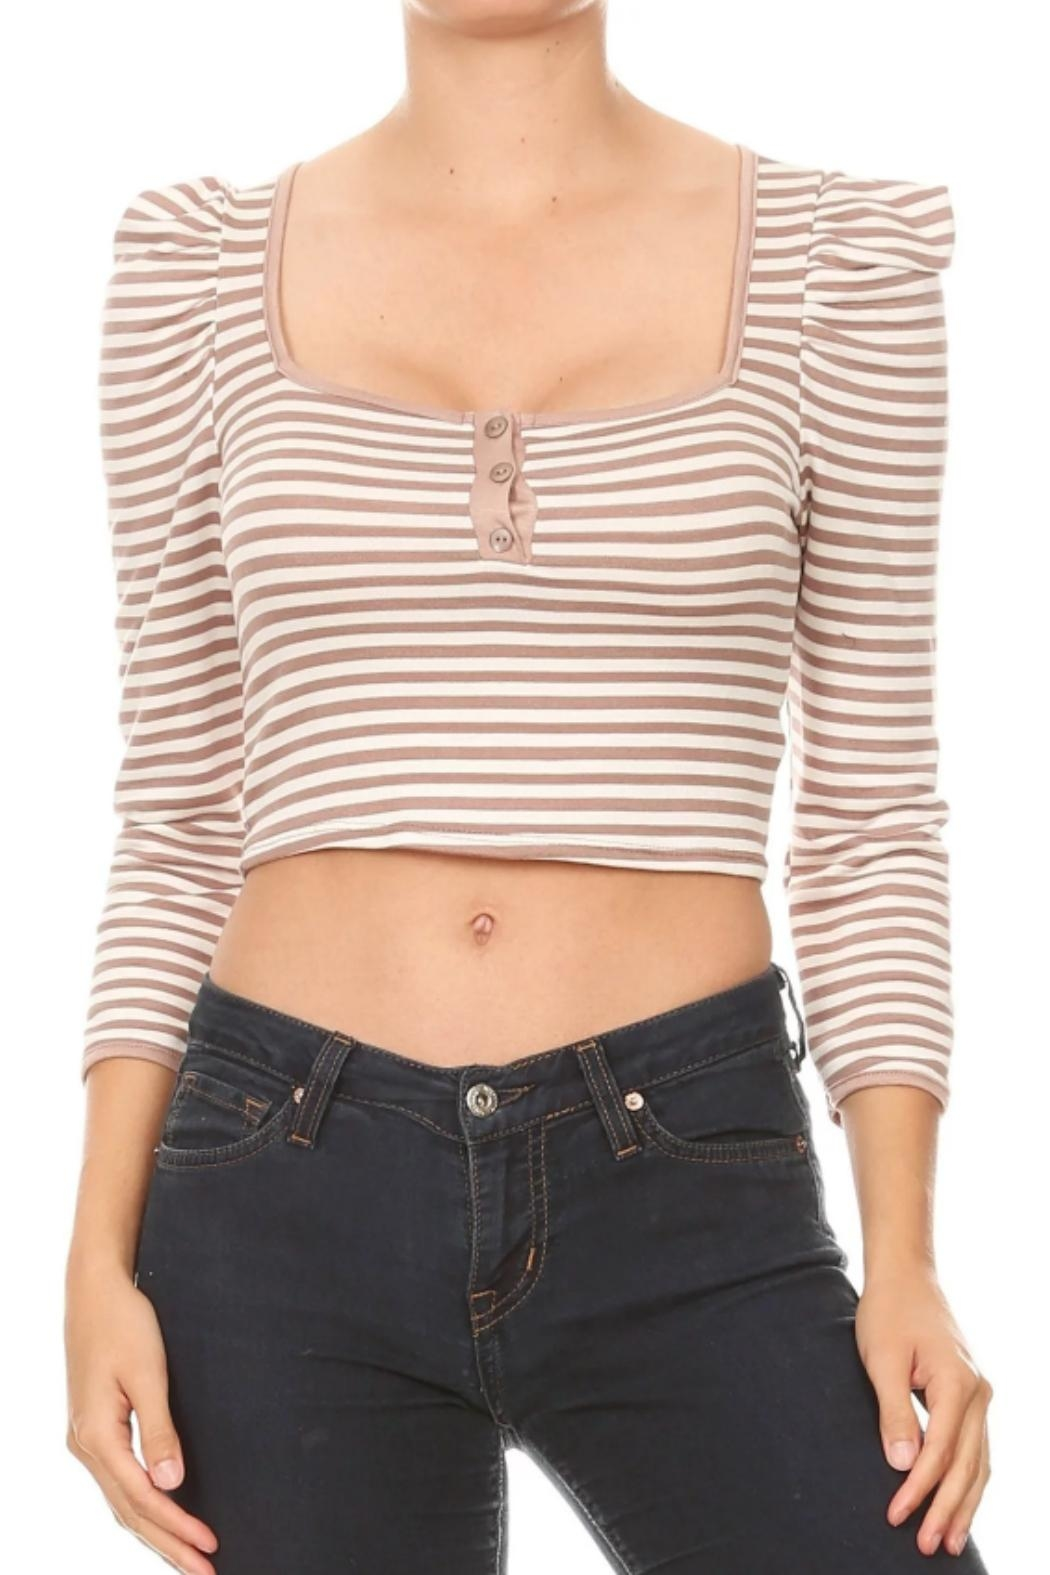 Ginger G Striped Crop Top - Main Image